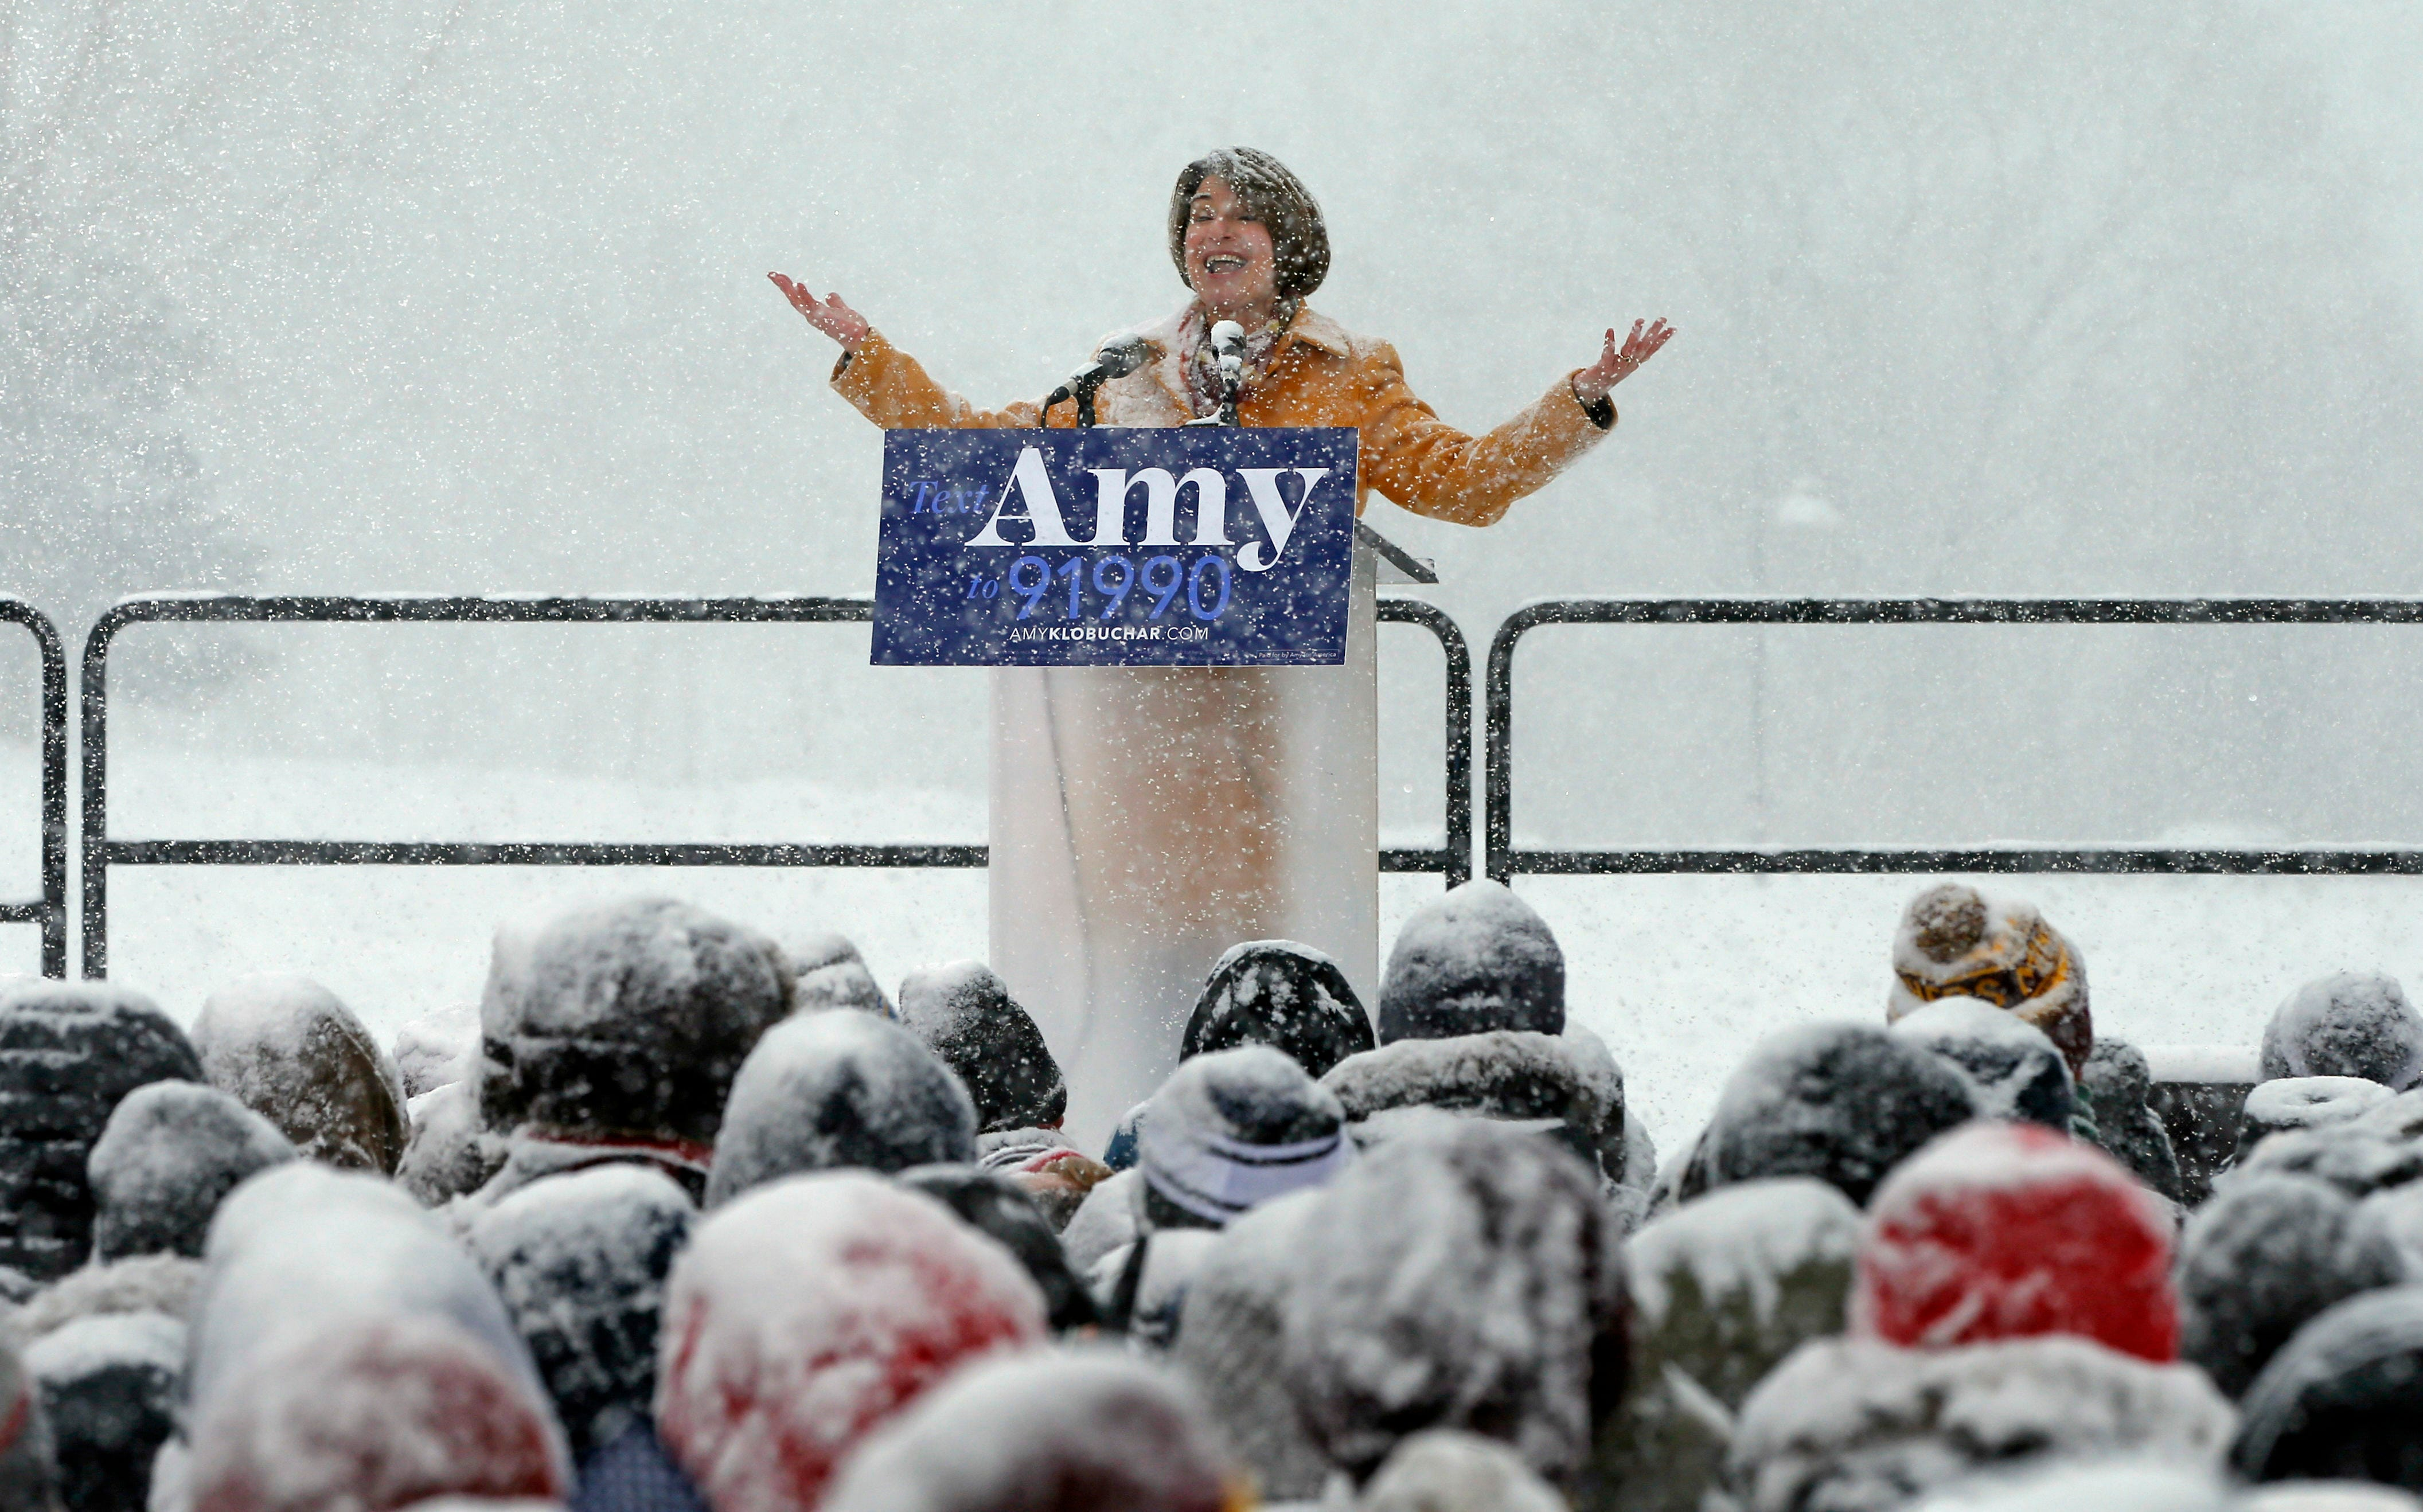 Democratic Sen. Amy Klobuchar addresses a snowy rally where she announced she is entering the race for president Sunday, Feb. 10, 2019, at Boom Island Park in Minneapolis.